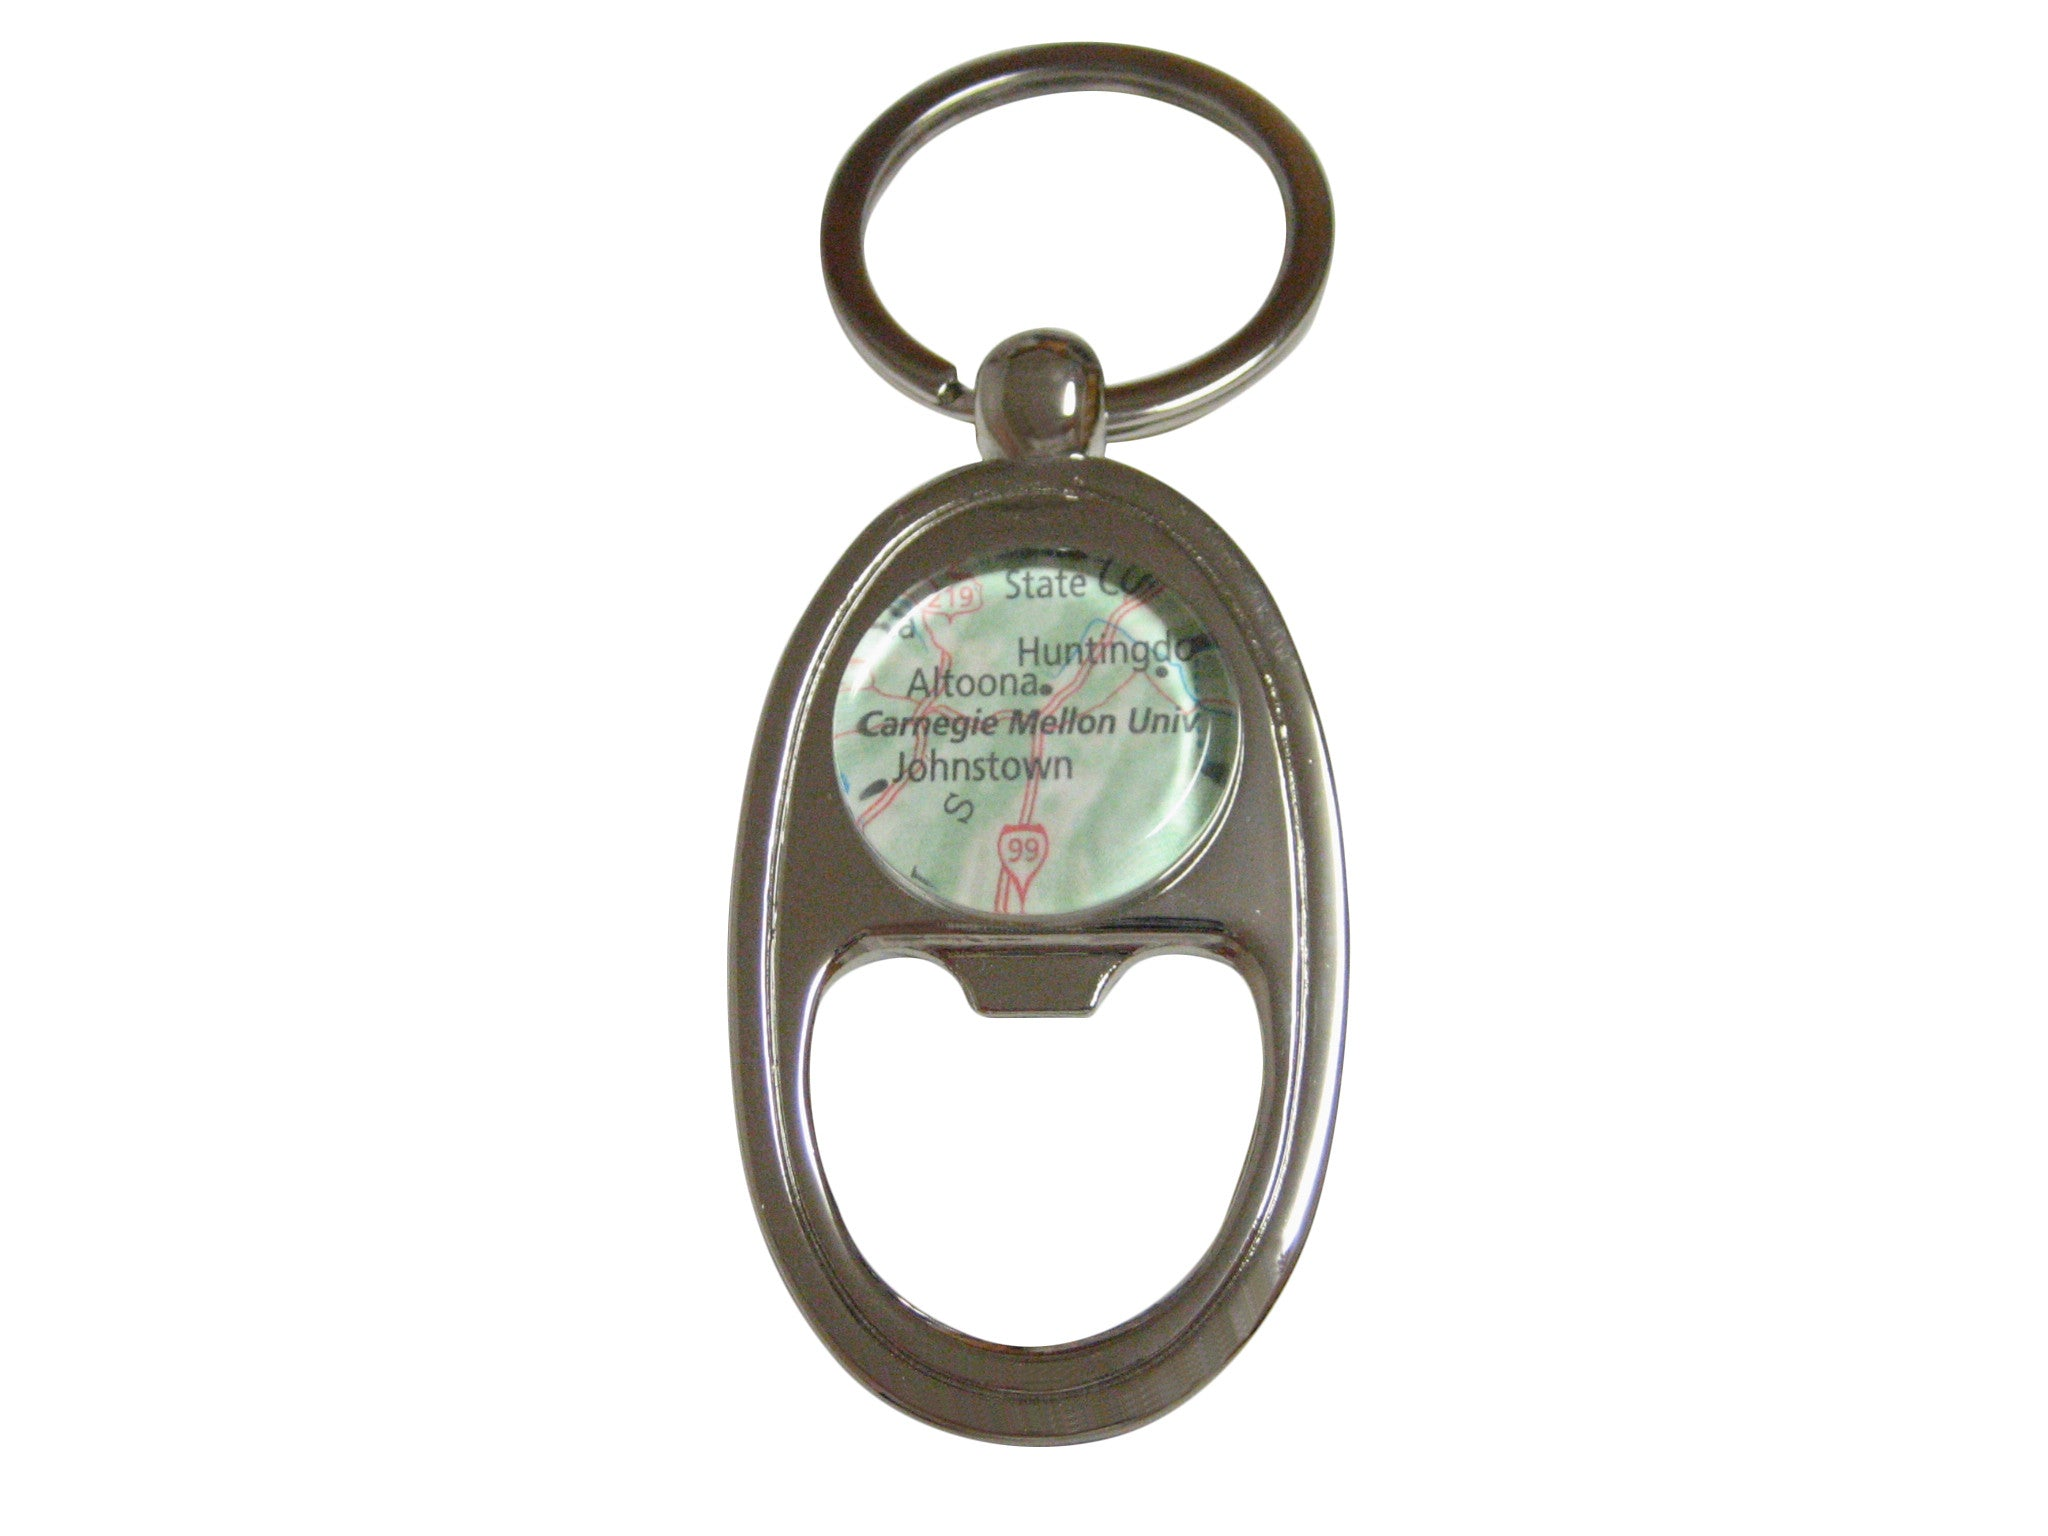 Carnegie Mellon University Map Key Chain Bottle Opener